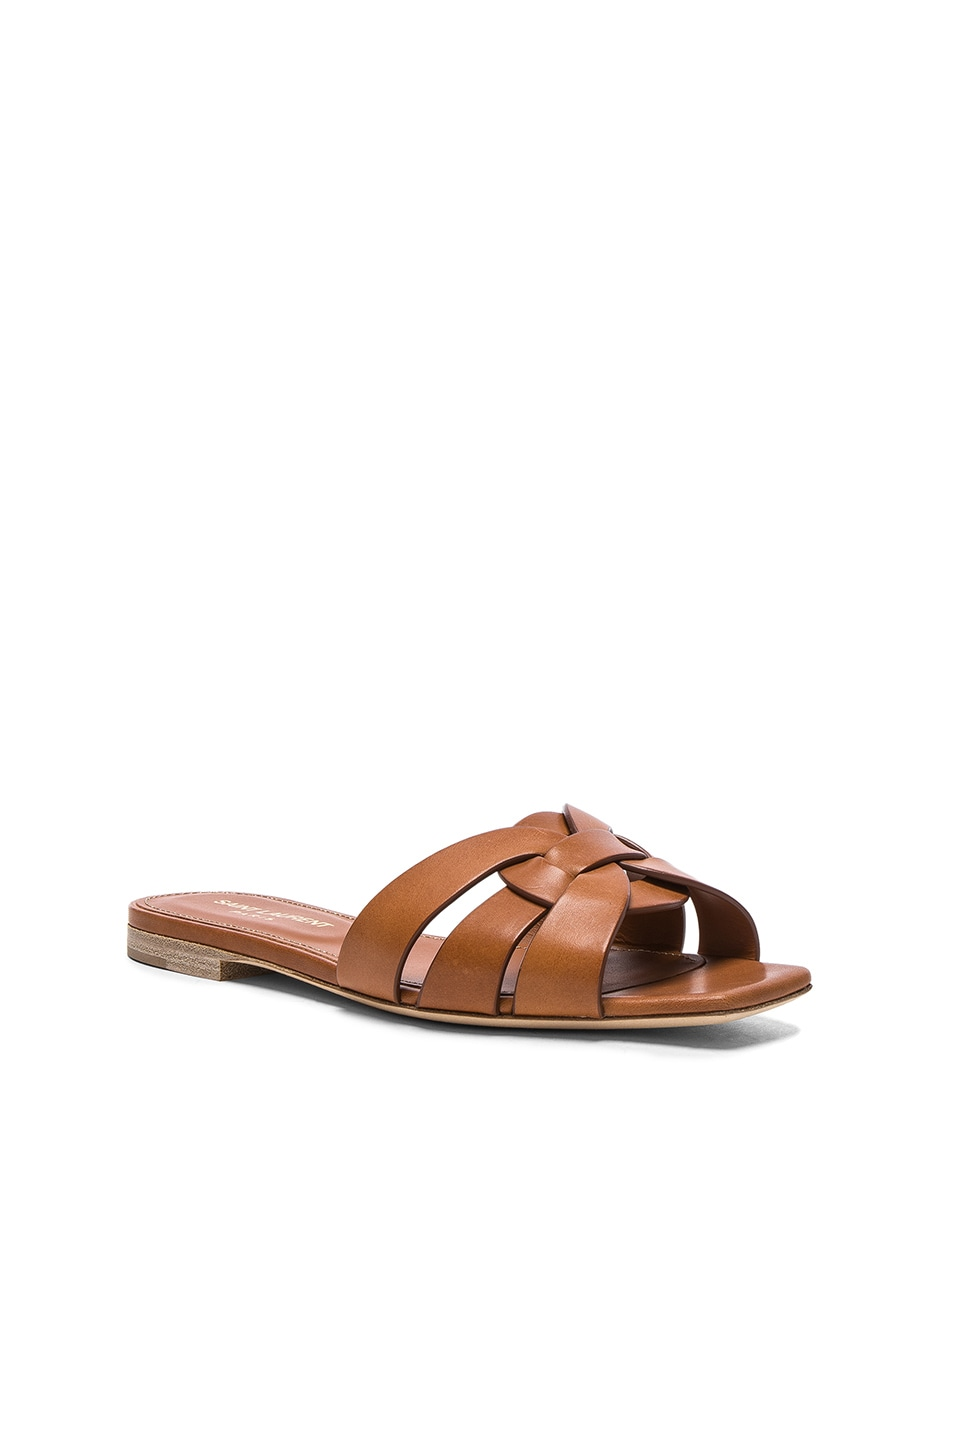 Image 2 of Saint Laurent Nu Pieds Leather Slides in Amber